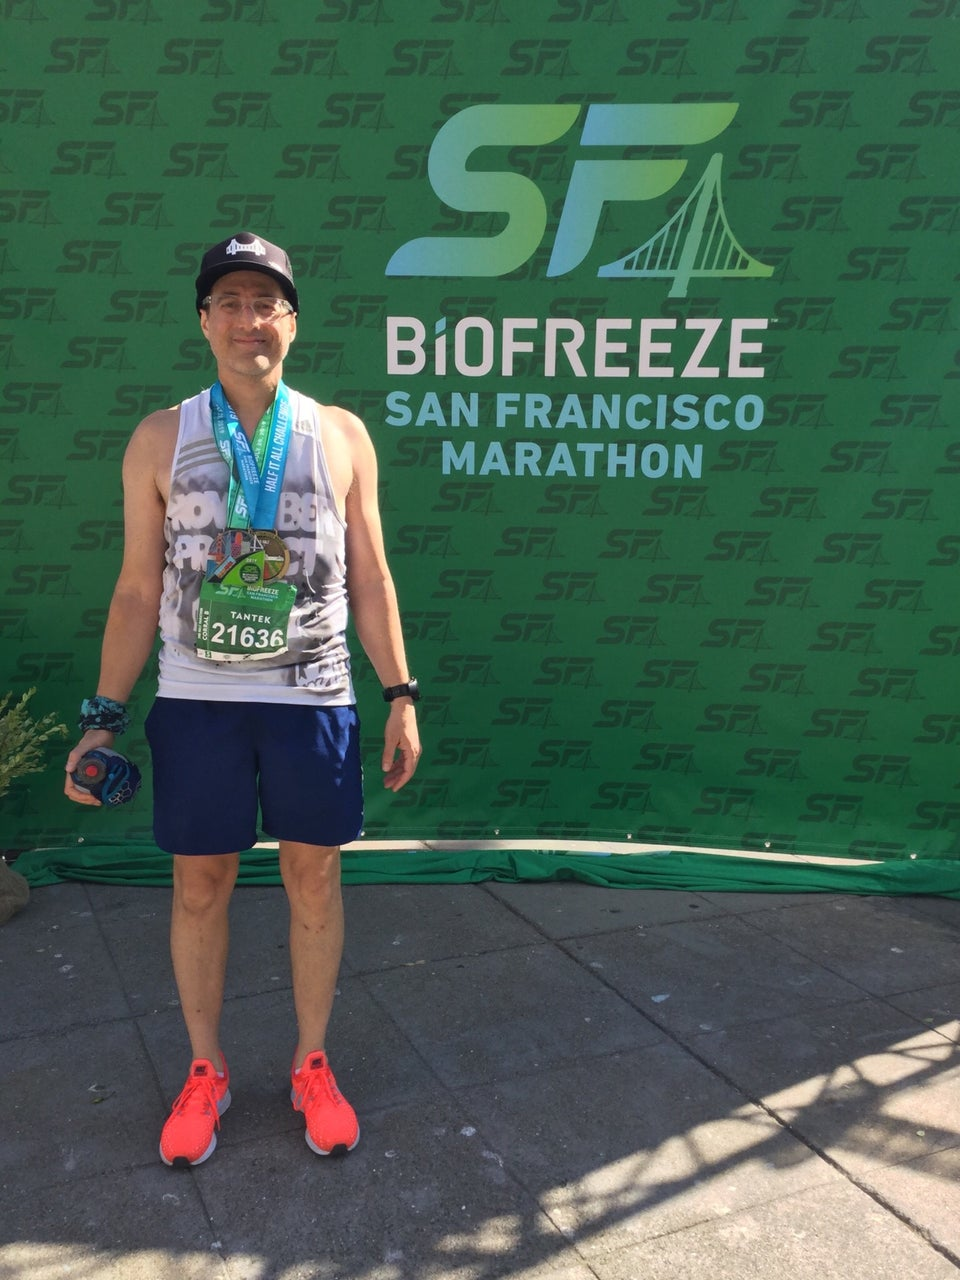 Tantek in his running outfit in front of the SF Biofreeze San Francisco marathon backdrop